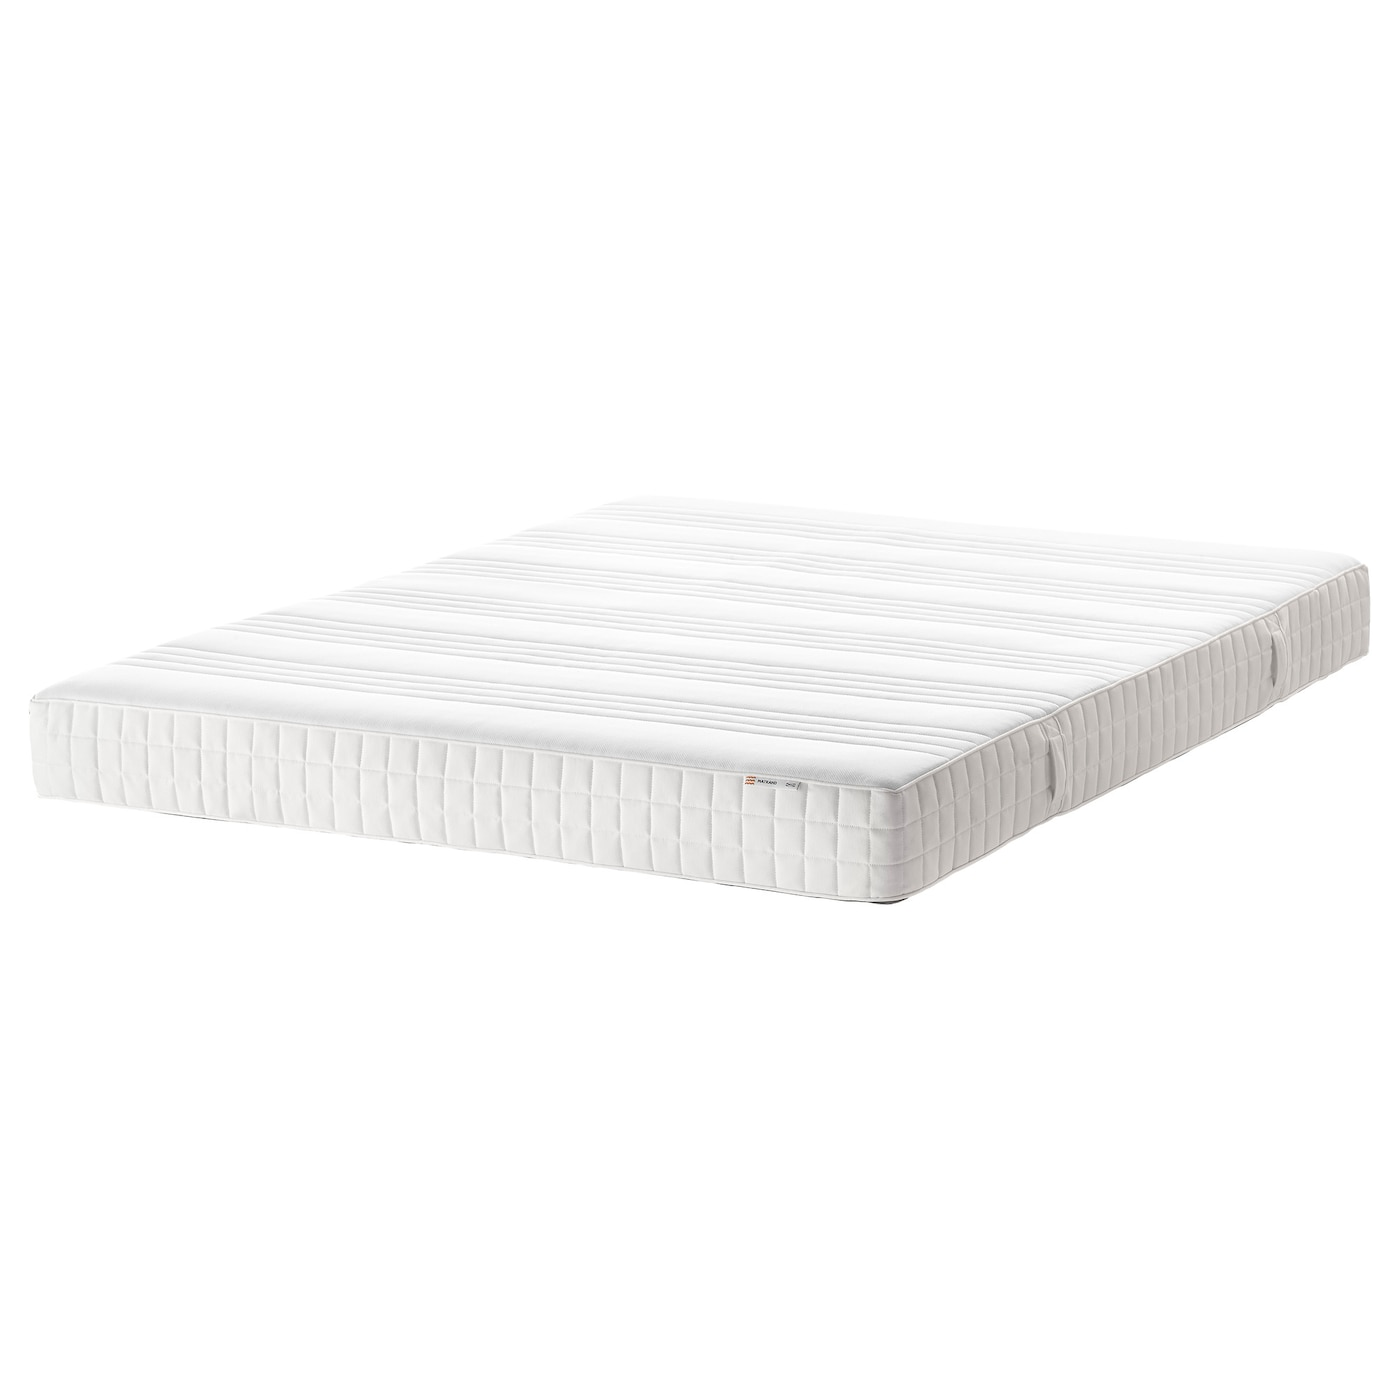 matrand matelas latex mi ferme blanc 160x200 cm ikea. Black Bedroom Furniture Sets. Home Design Ideas